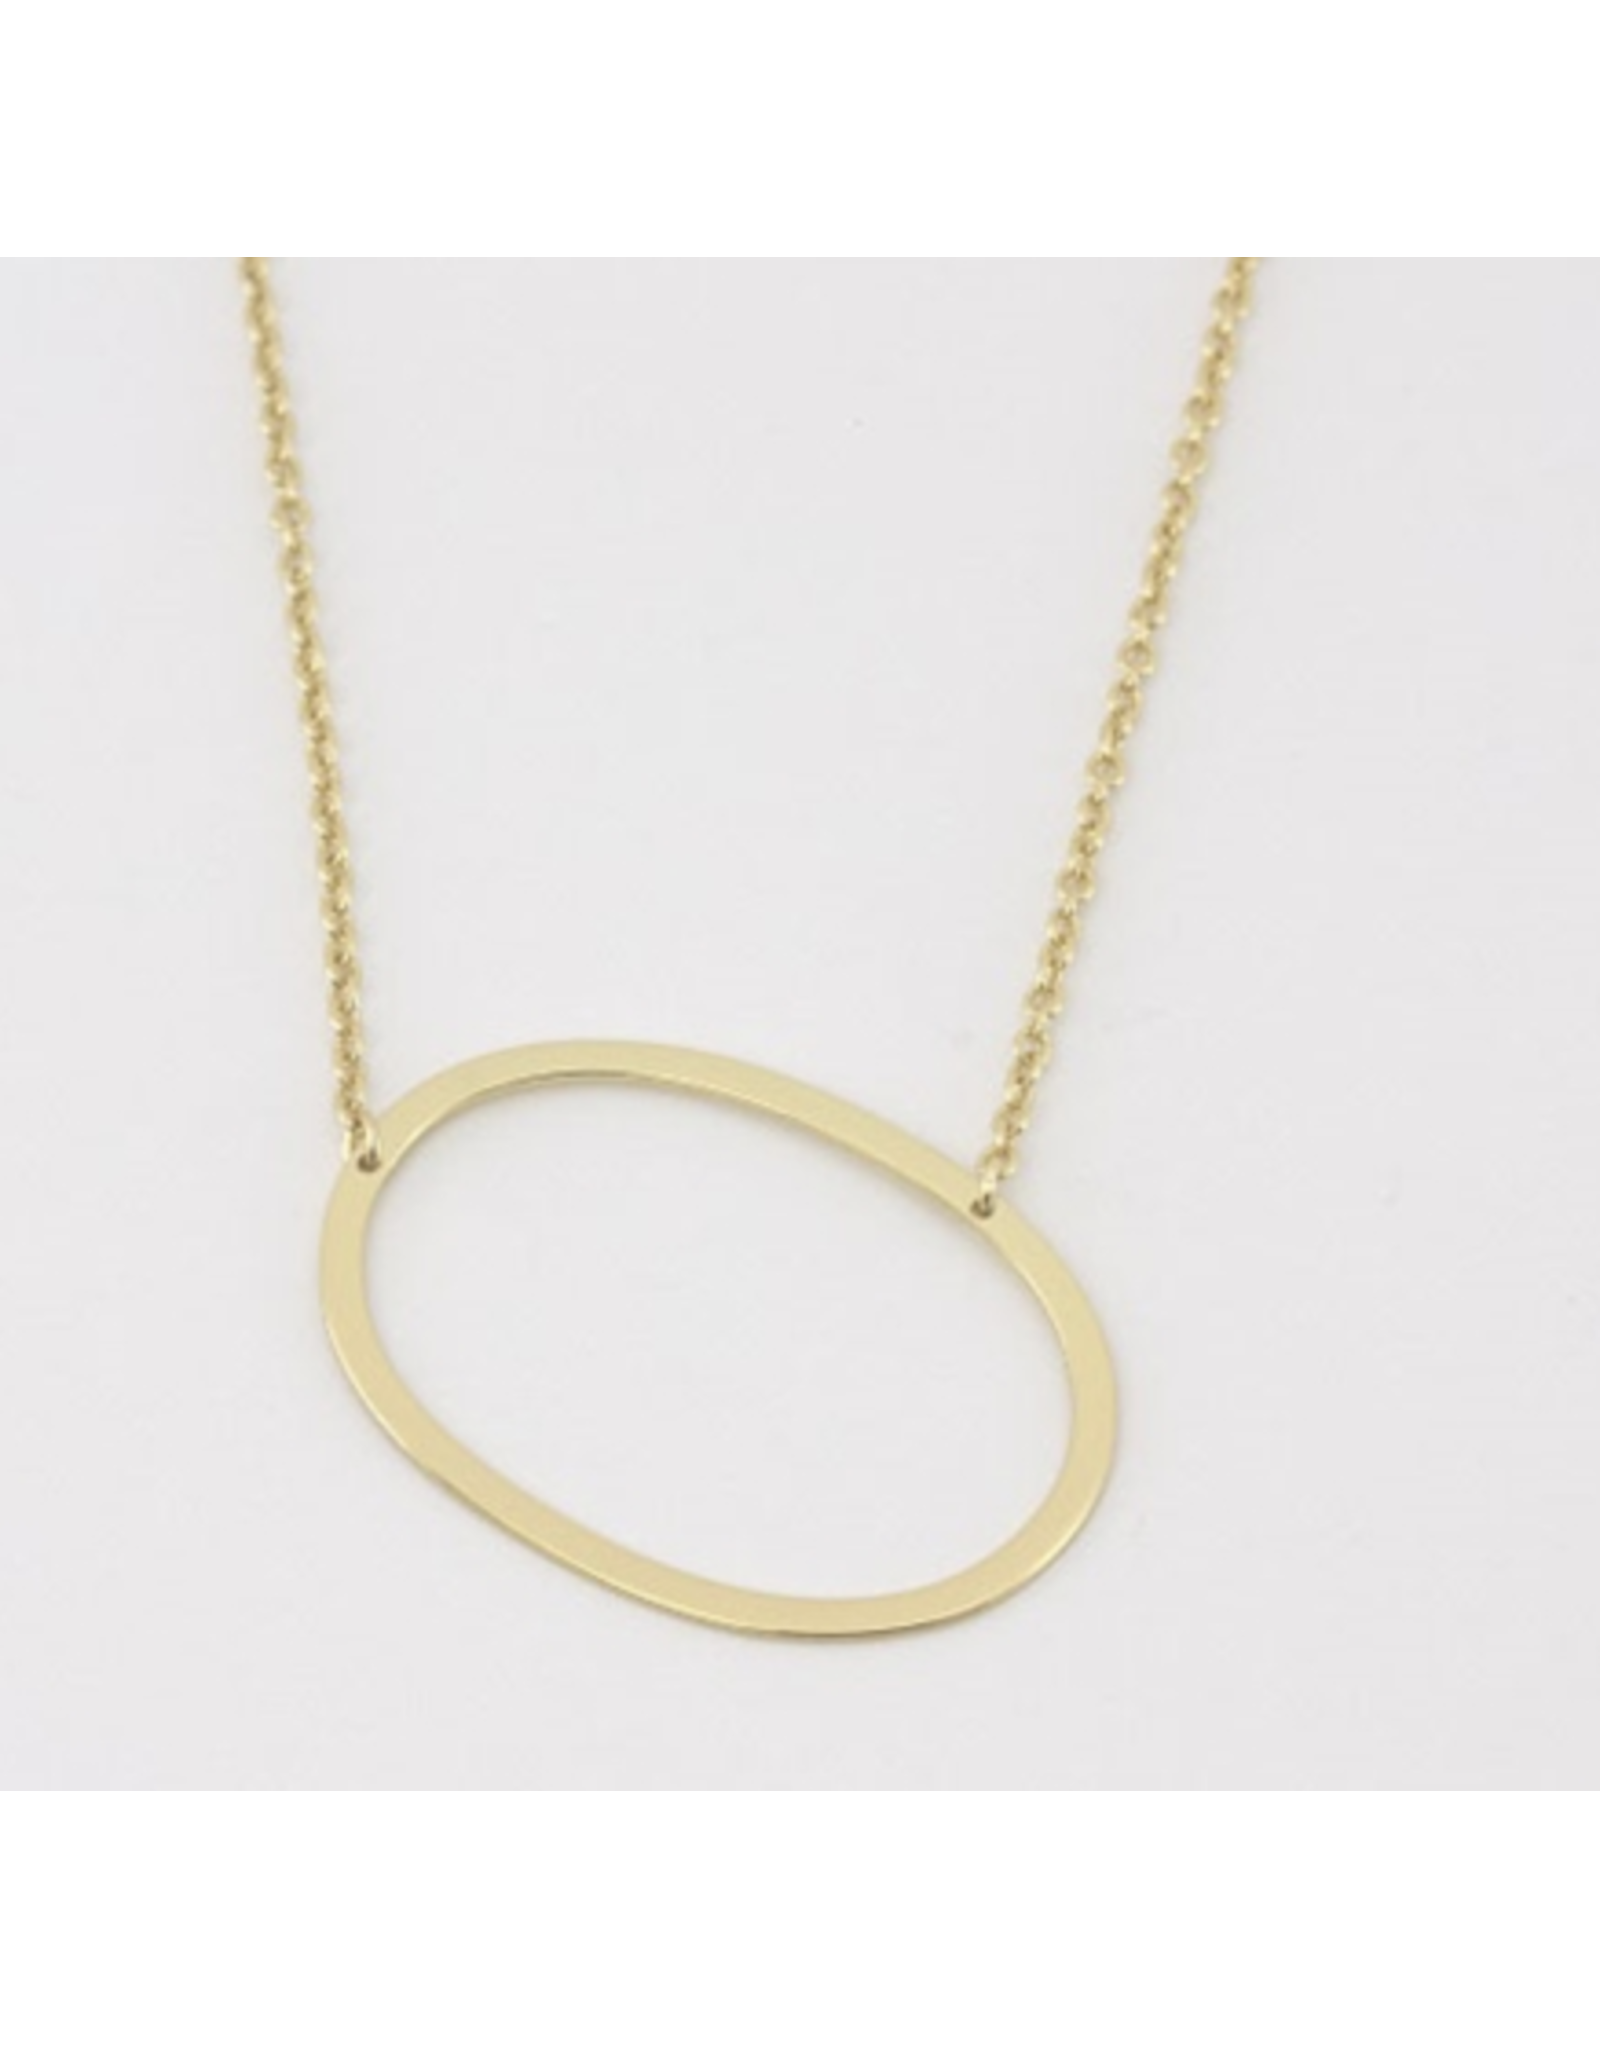 Cai Sideway Initial Necklace